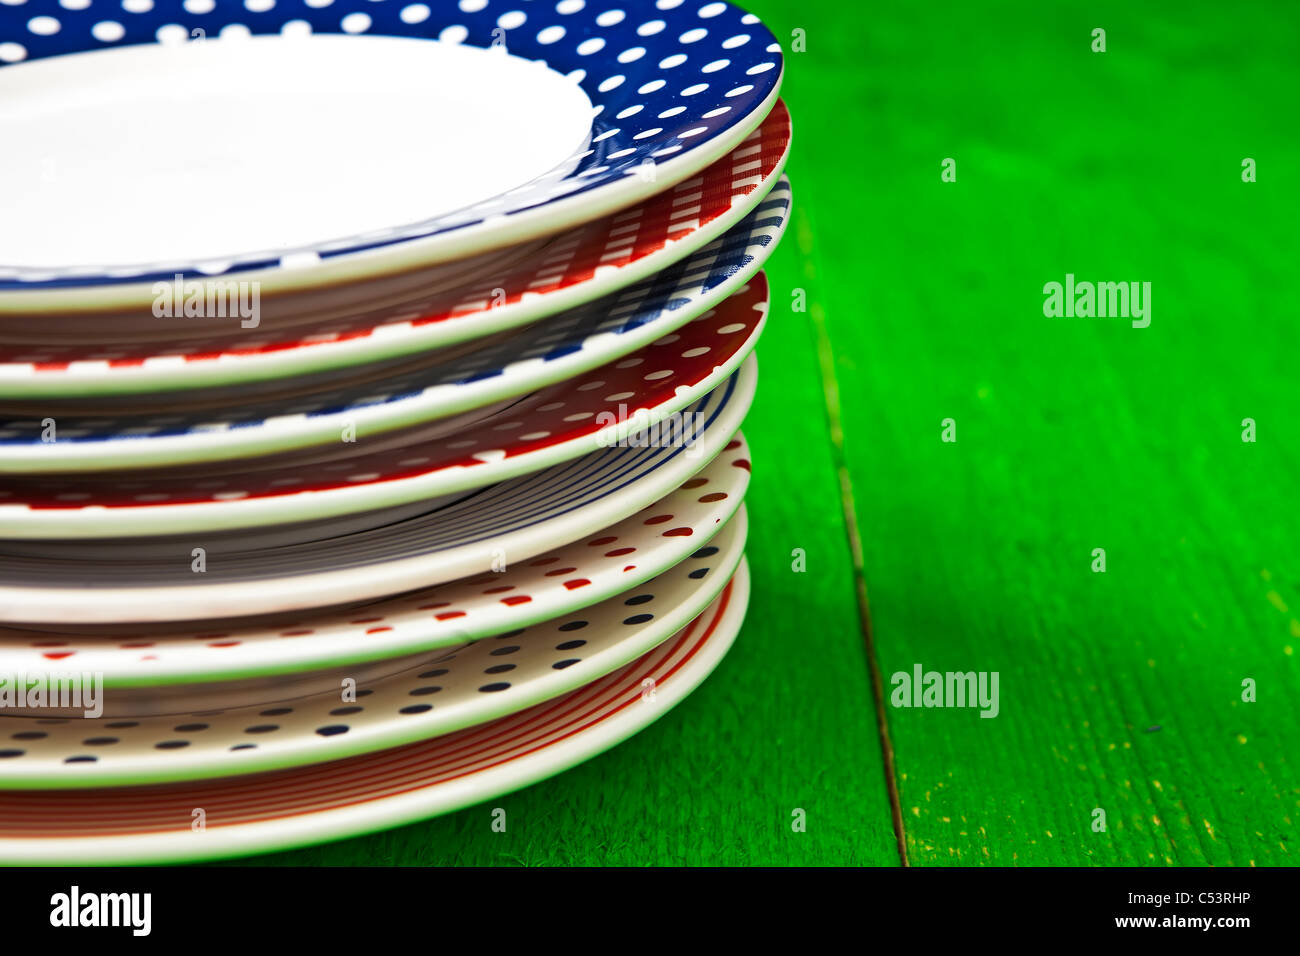 rustic and colorful plates on a green wooden table - Stock Image